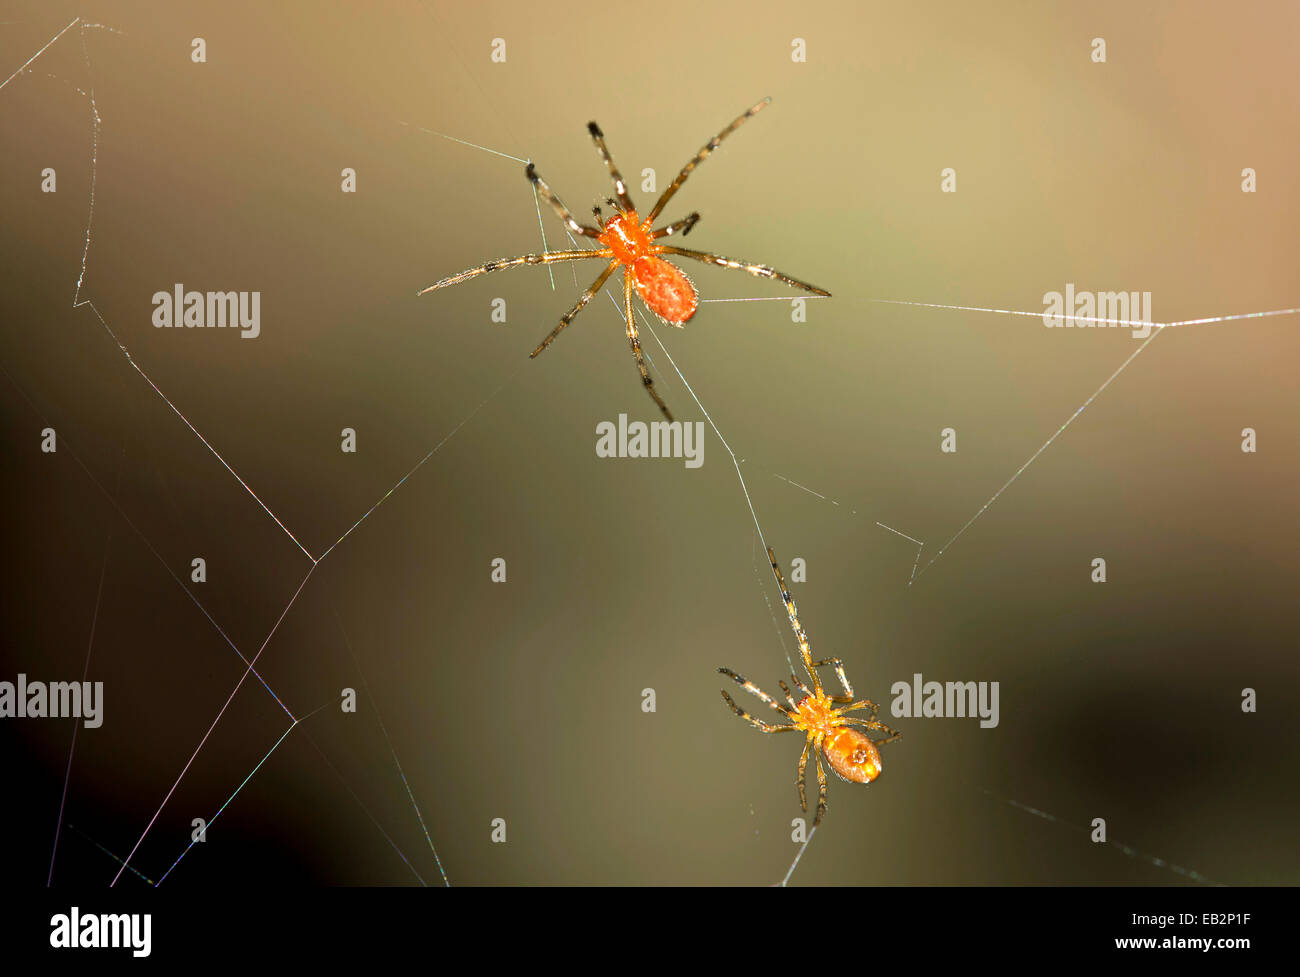 Tangle Web Spiders (Anelosimus sp.) social spiders sharing a web, Tambopata Nature Reserve, Madre de Dios Region, - Stock Image